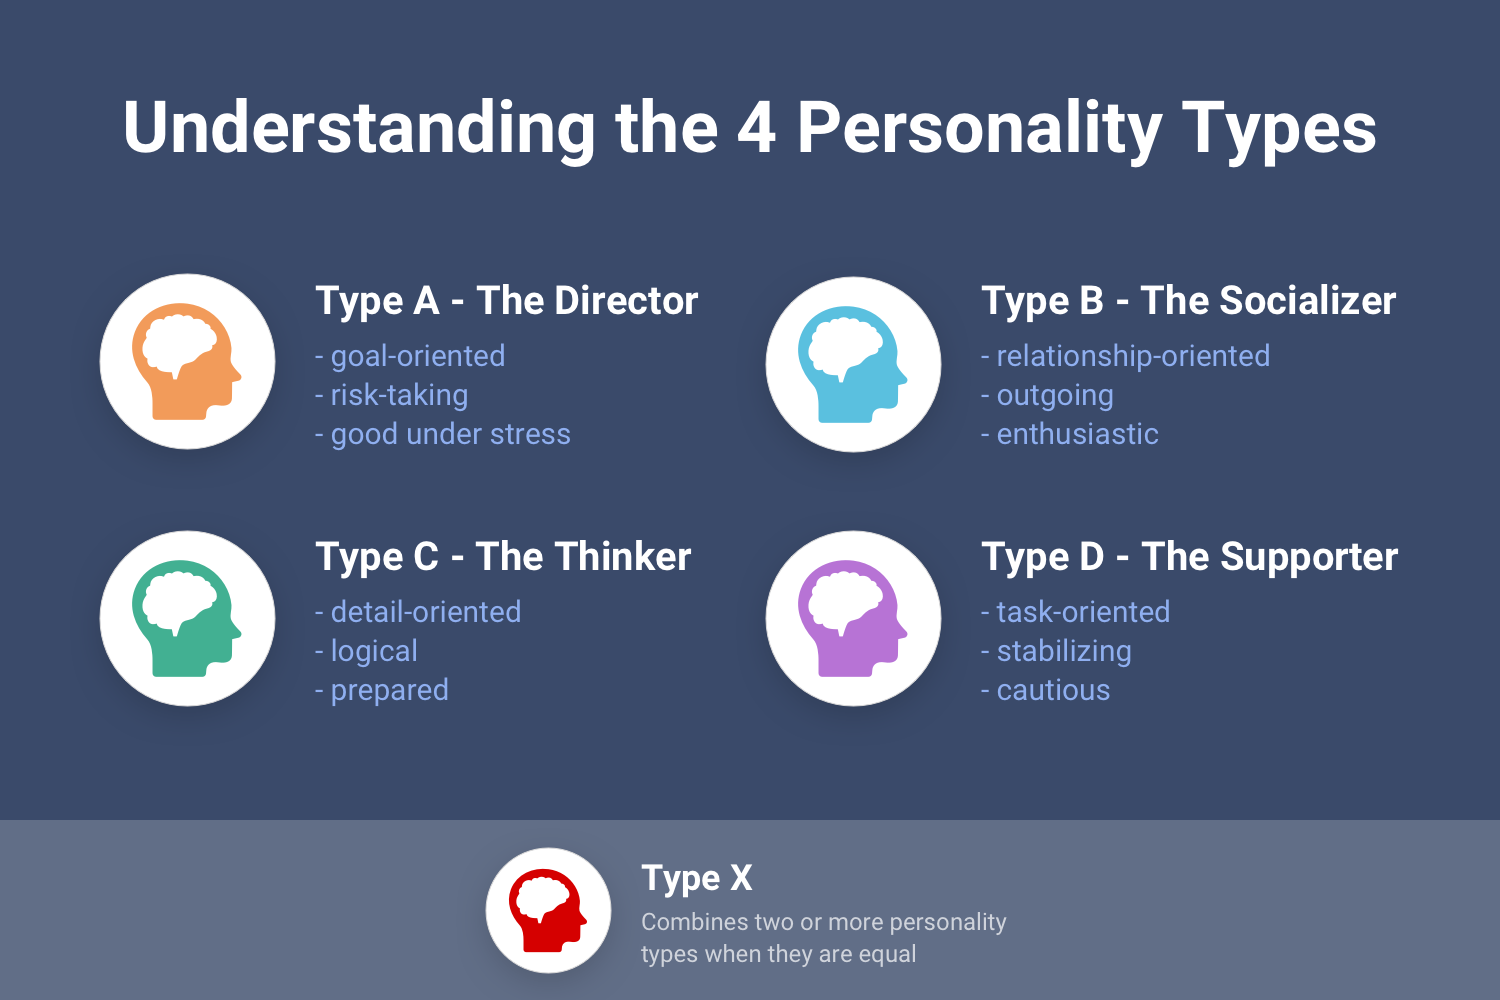 Understanding the 4 personality types